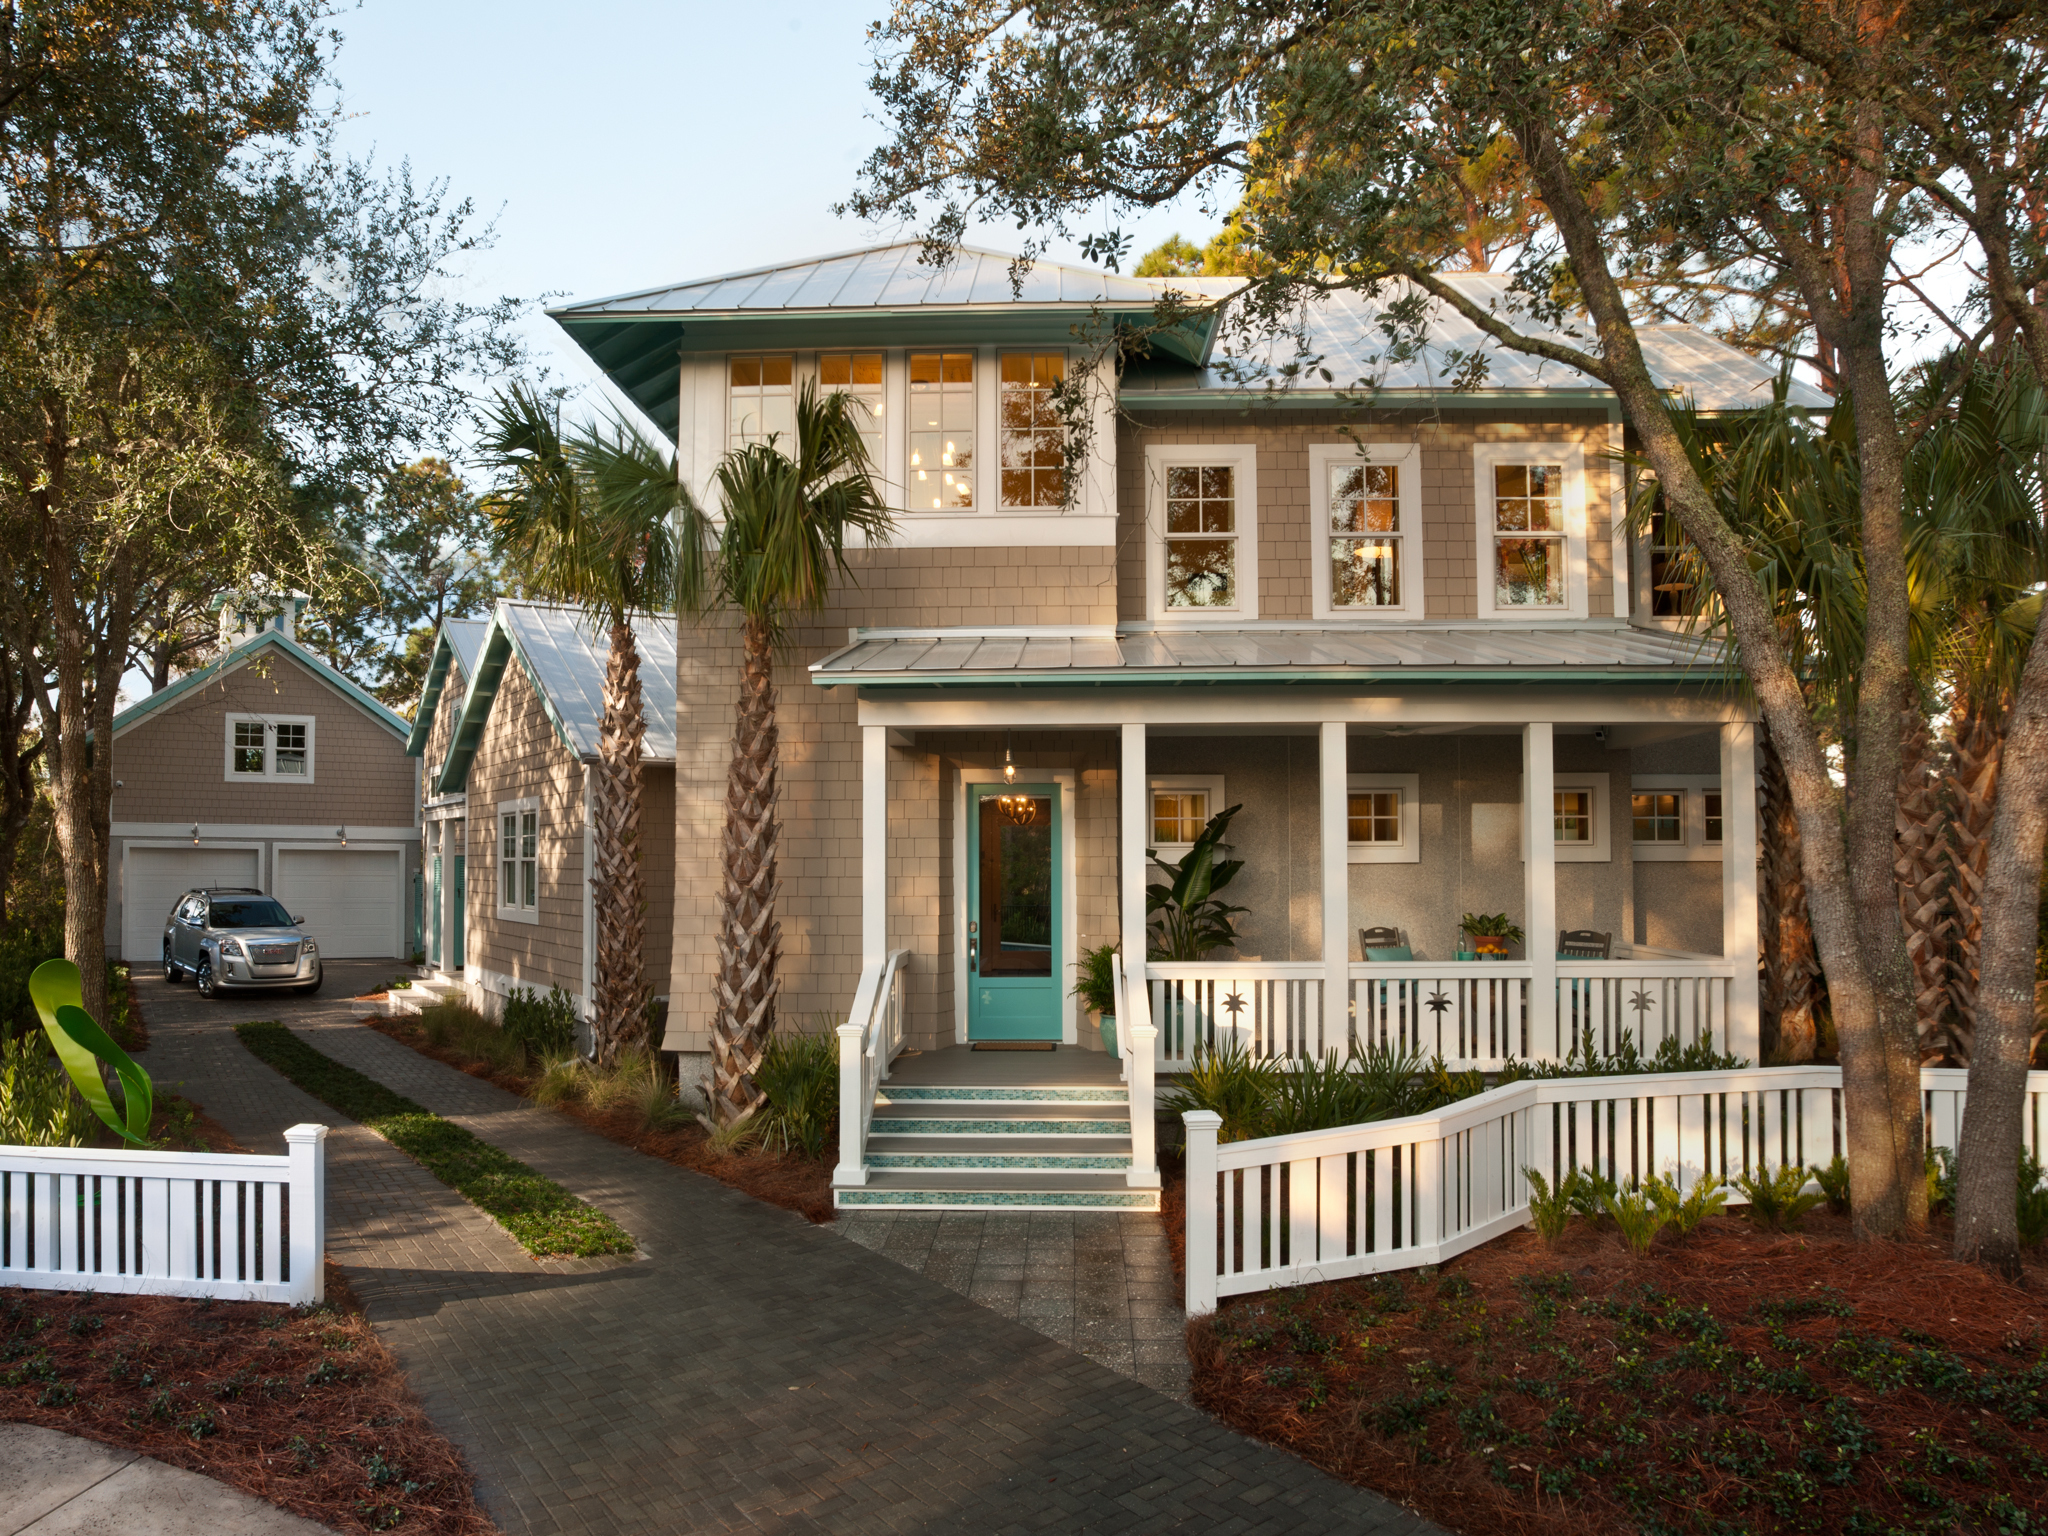 Hgtv Smart Home℠ 2013 Giveaway Enters The Home Stretch